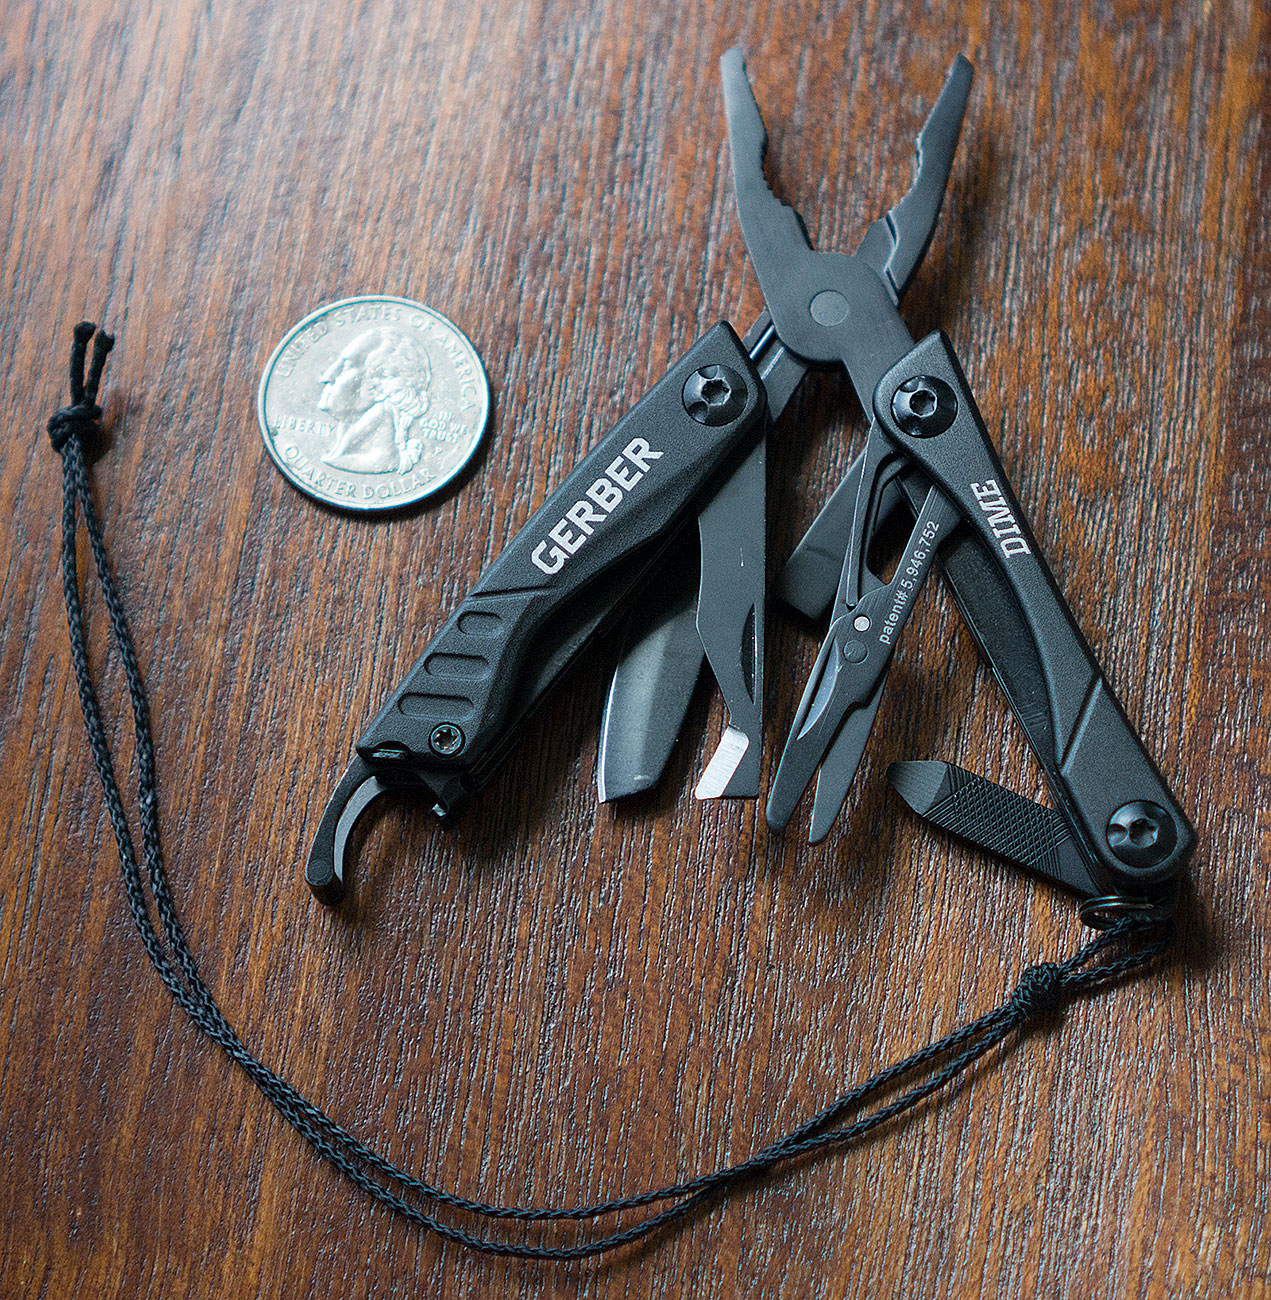 Gerber Dime Multitool size comparison